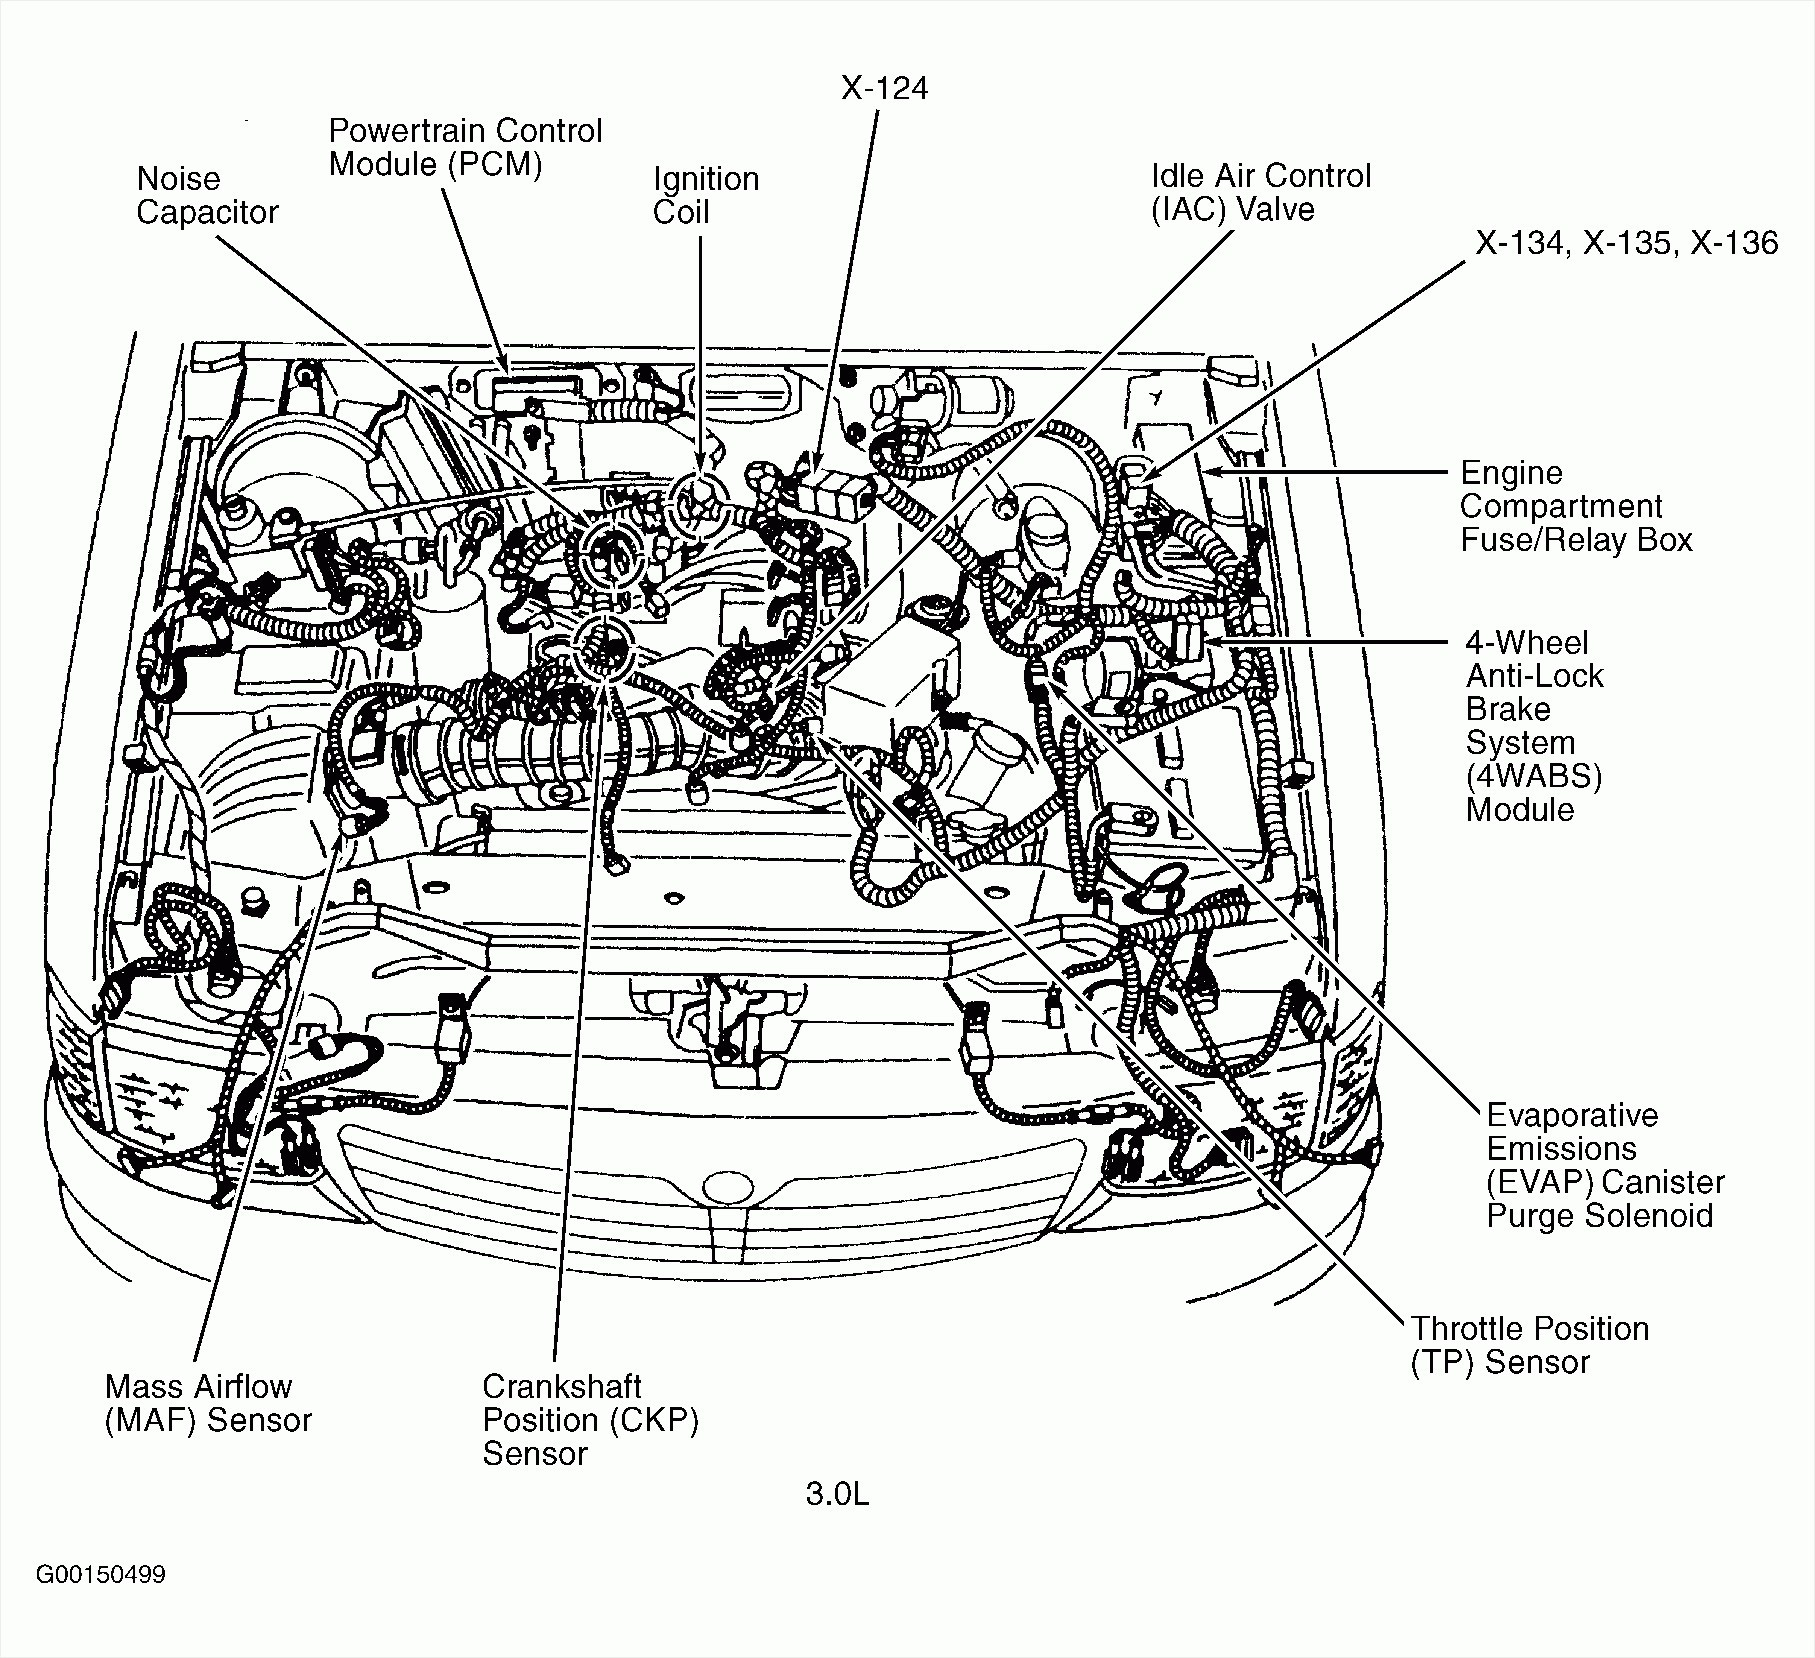 Dodge Caravan Engine Diagram 3 1 Liter V6 Engine Diagram 2004 Mazda 6 V6 Engine Diagram Wiring Of Dodge Caravan Engine Diagram